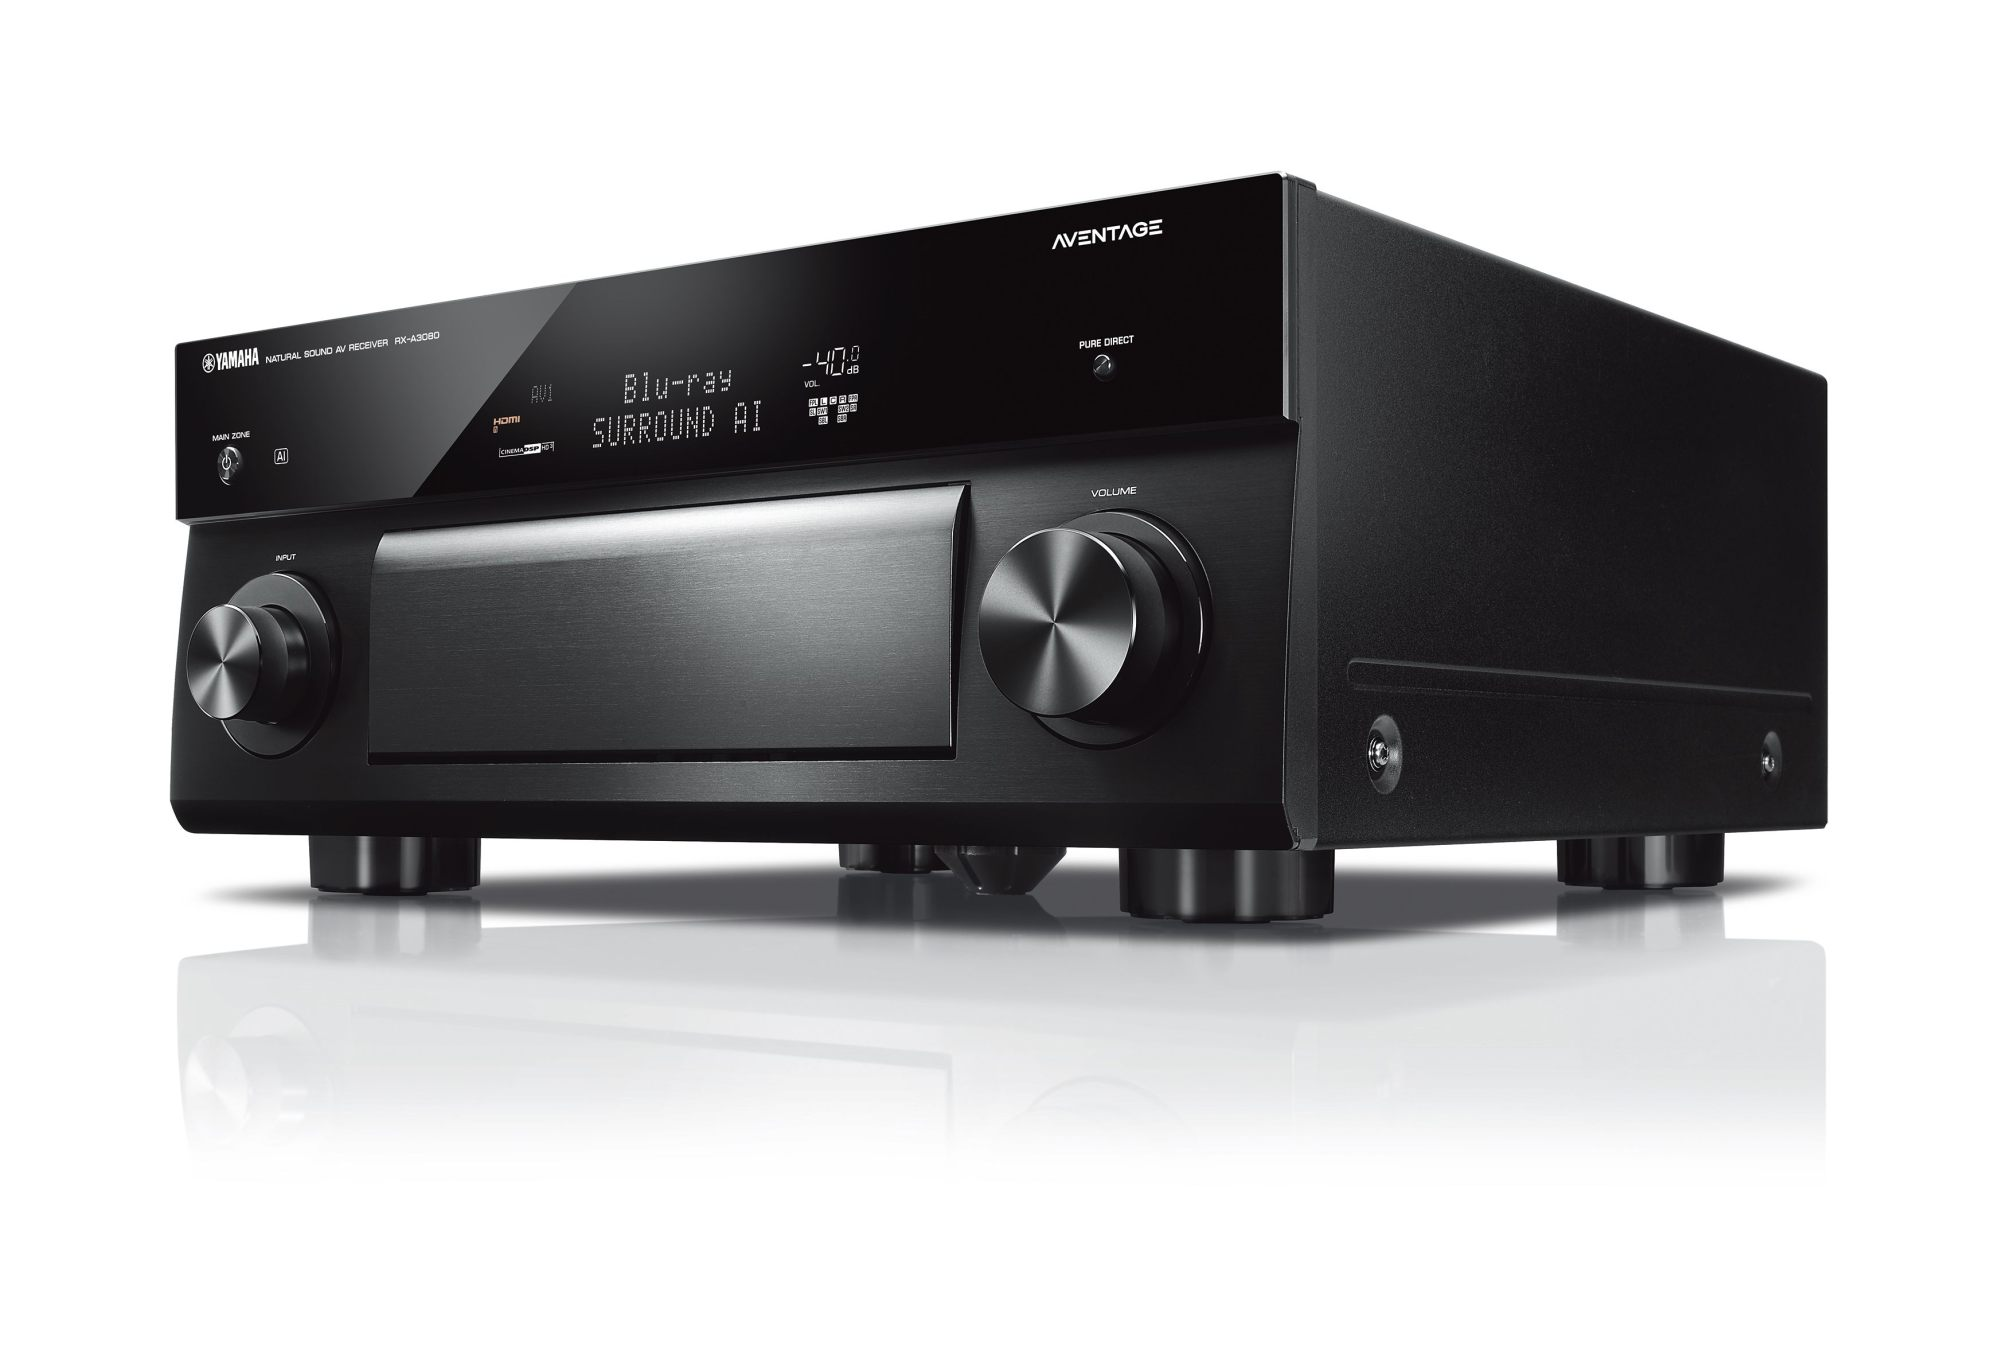 hight resolution of rx a3080 aventage 9 2 channel av receiver with musiccast